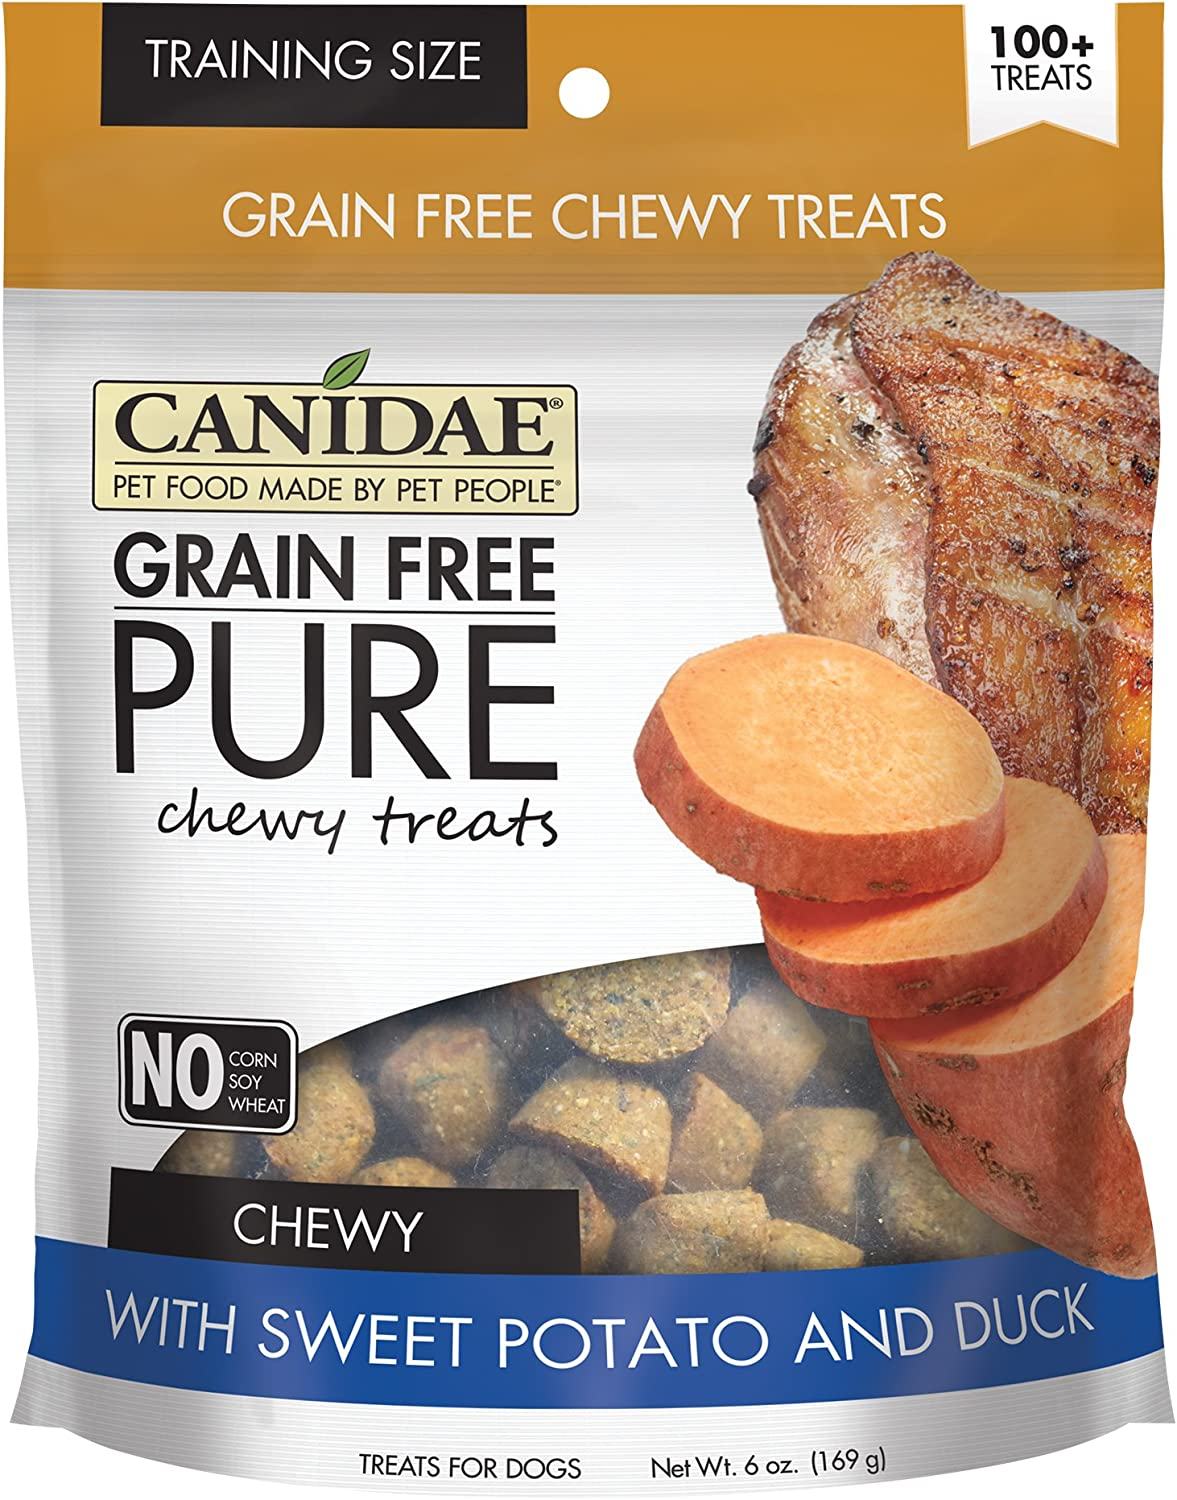 Canidae Grain Free Pure Chewy Dog Treats With Sweet Potato & Duck, 6 Oz.